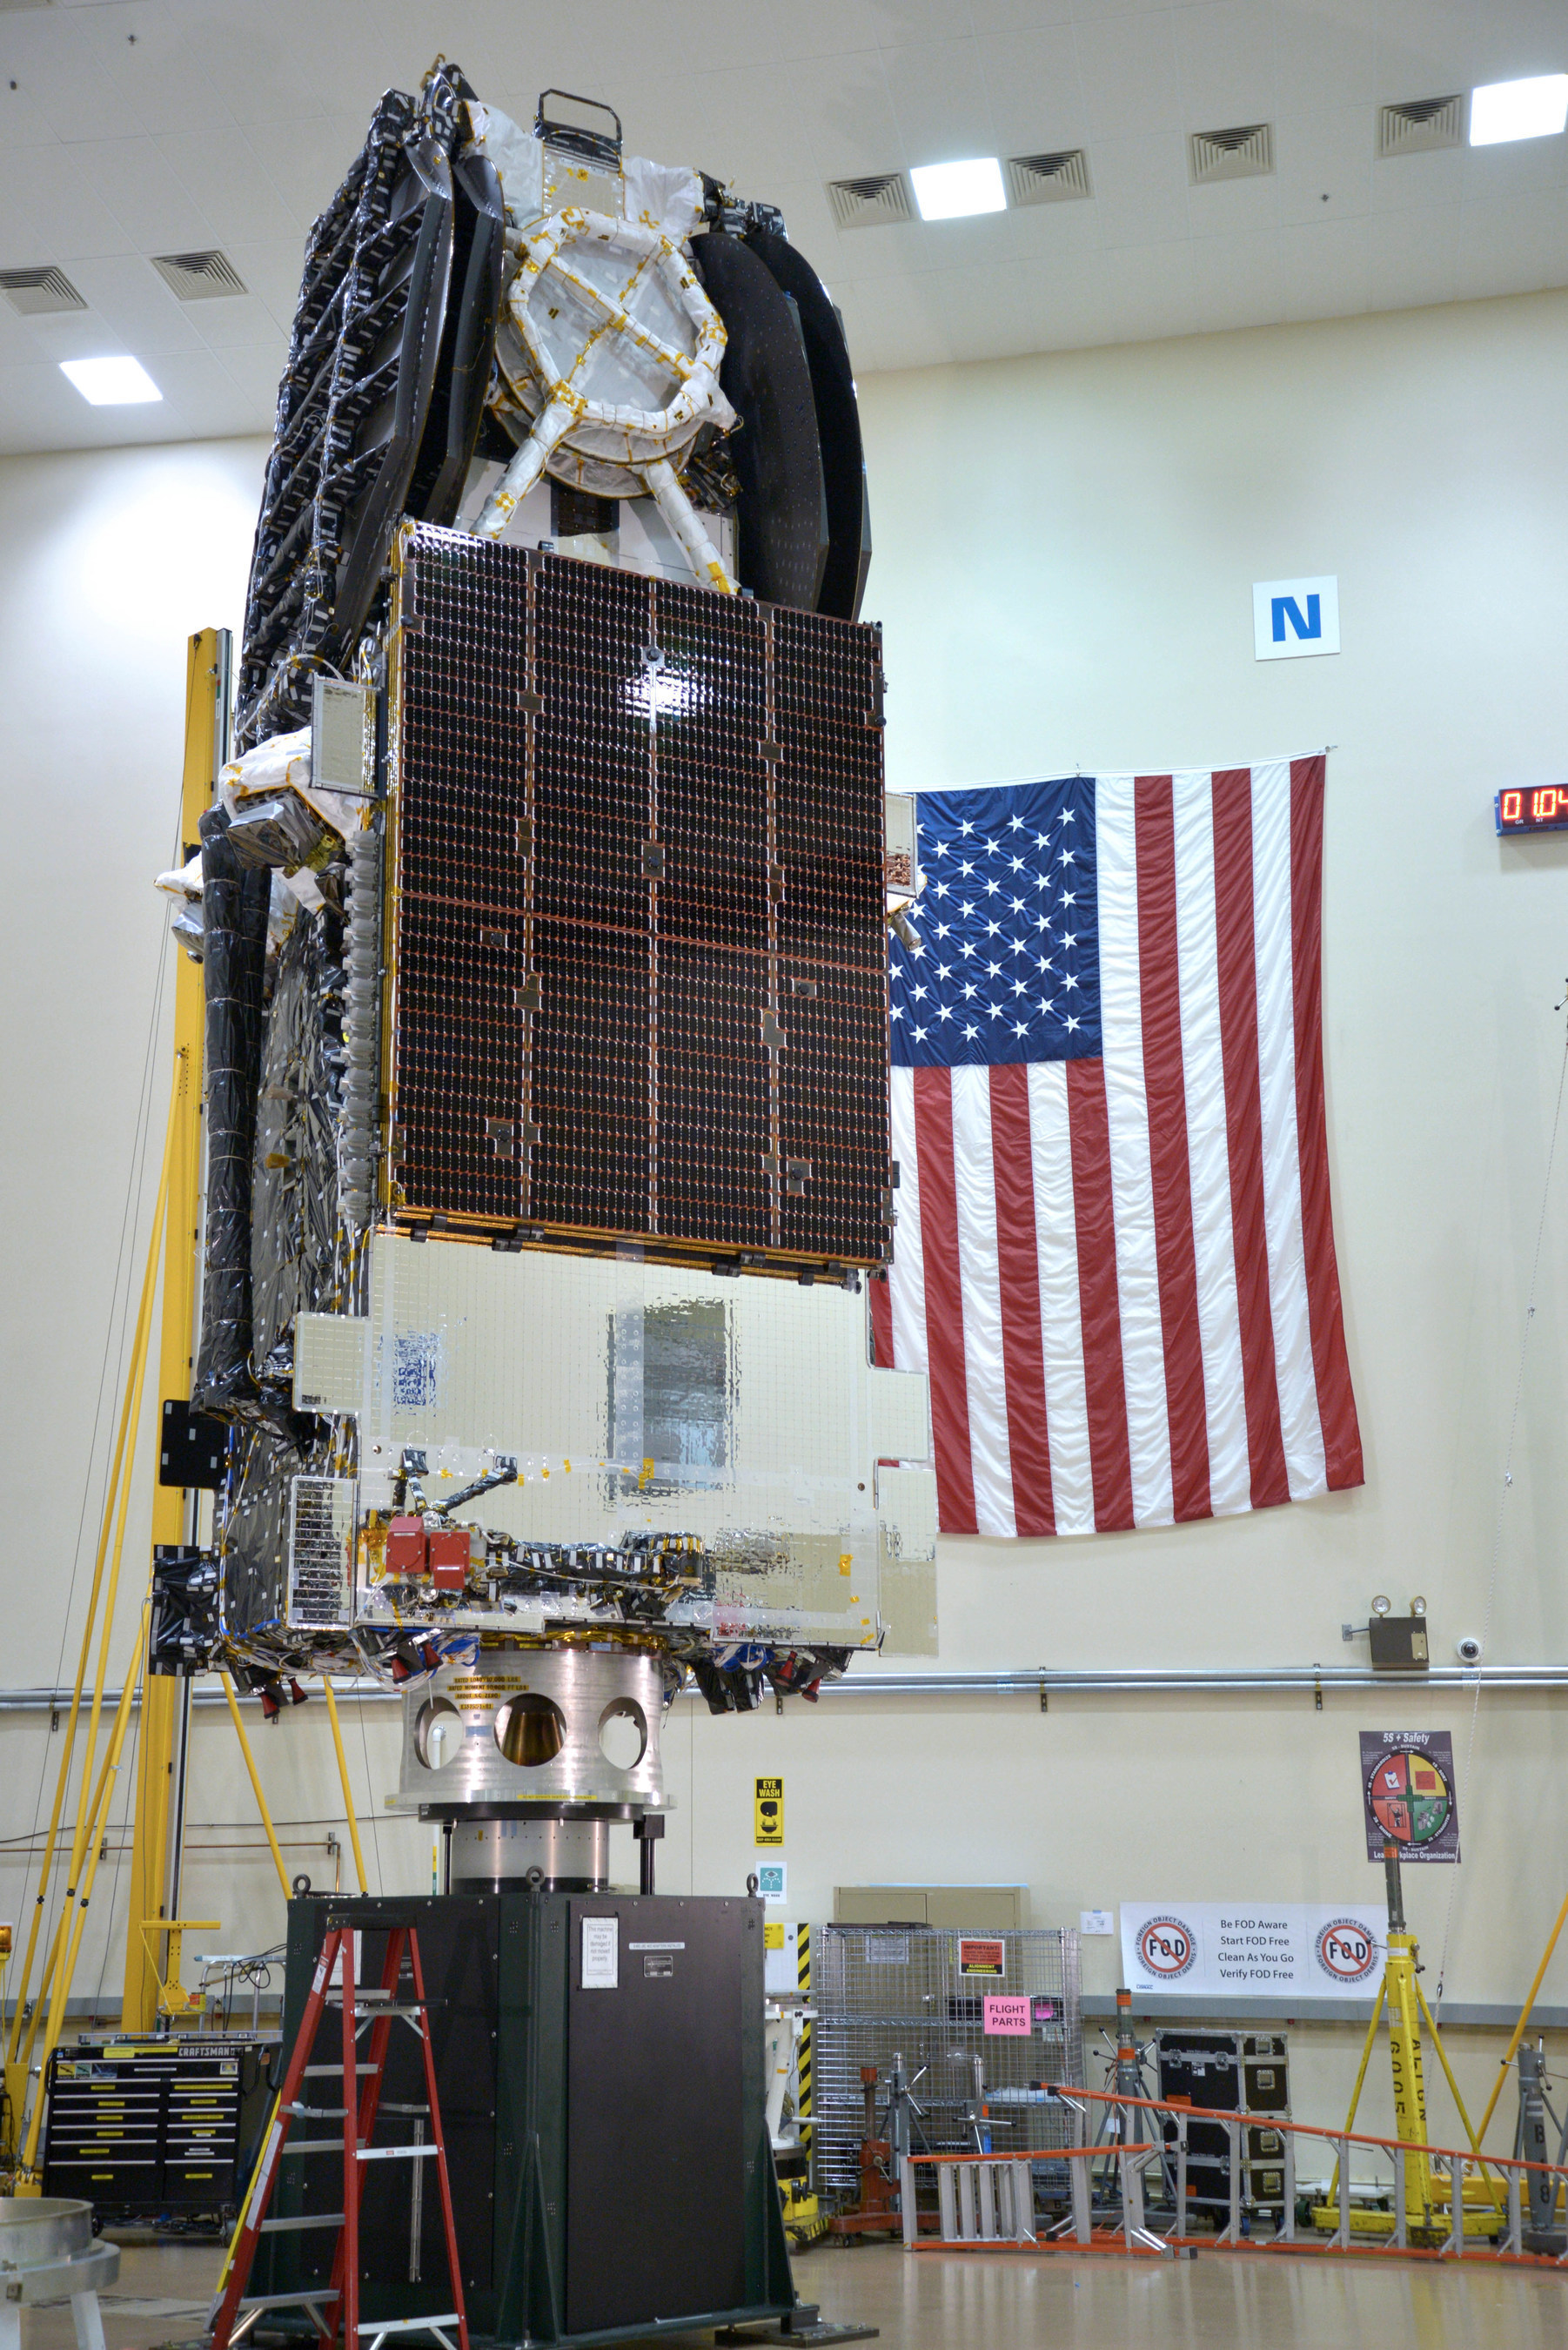 SSL delivers high performance broadband satellite to launch base, demonstrates leadership in